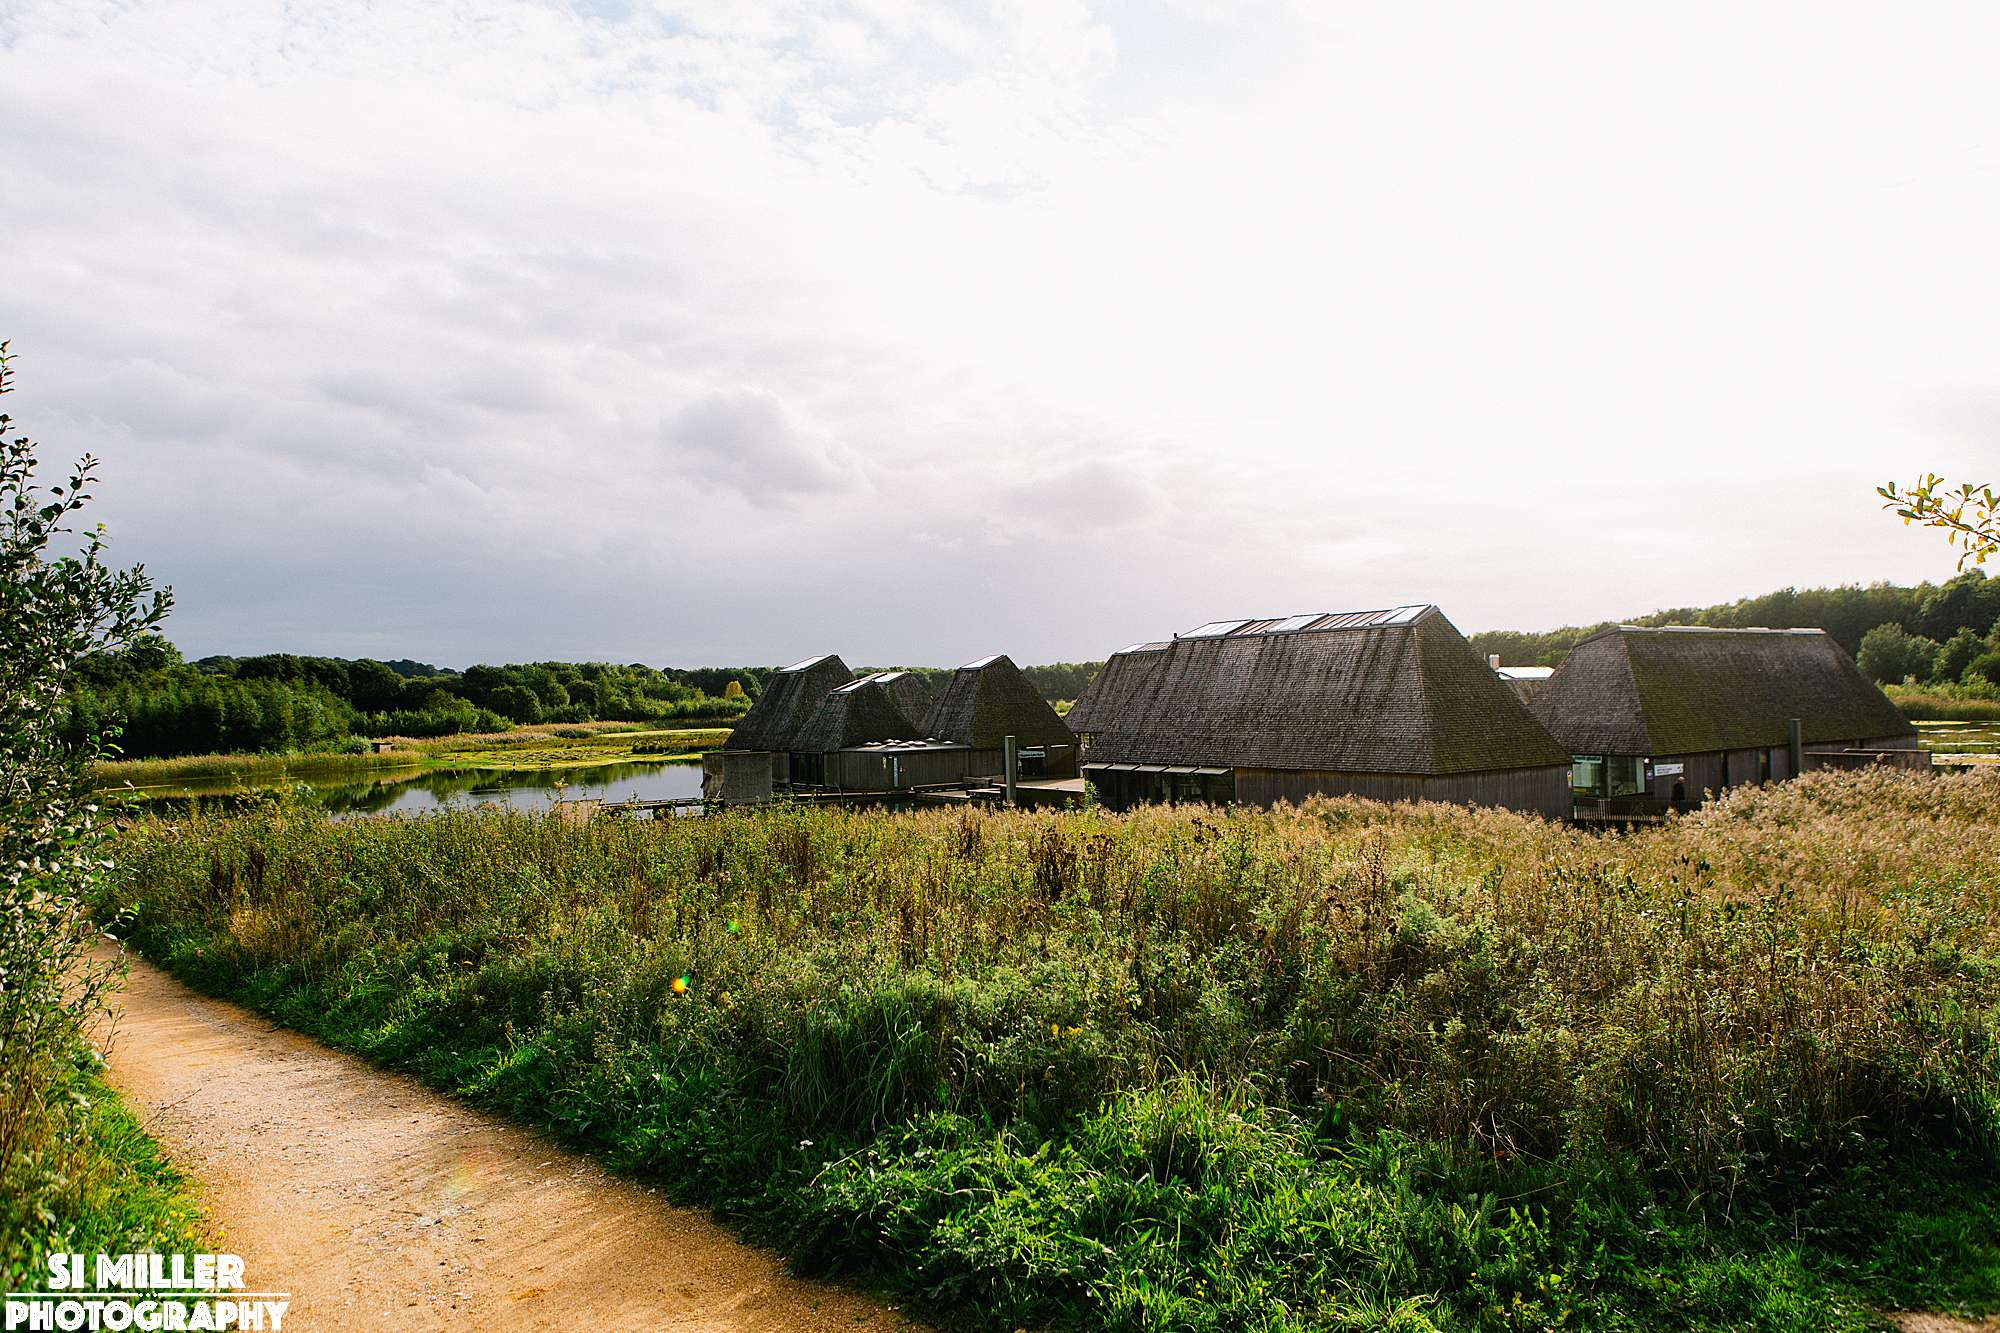 Brockholes floating island vistor centre with path leading to it